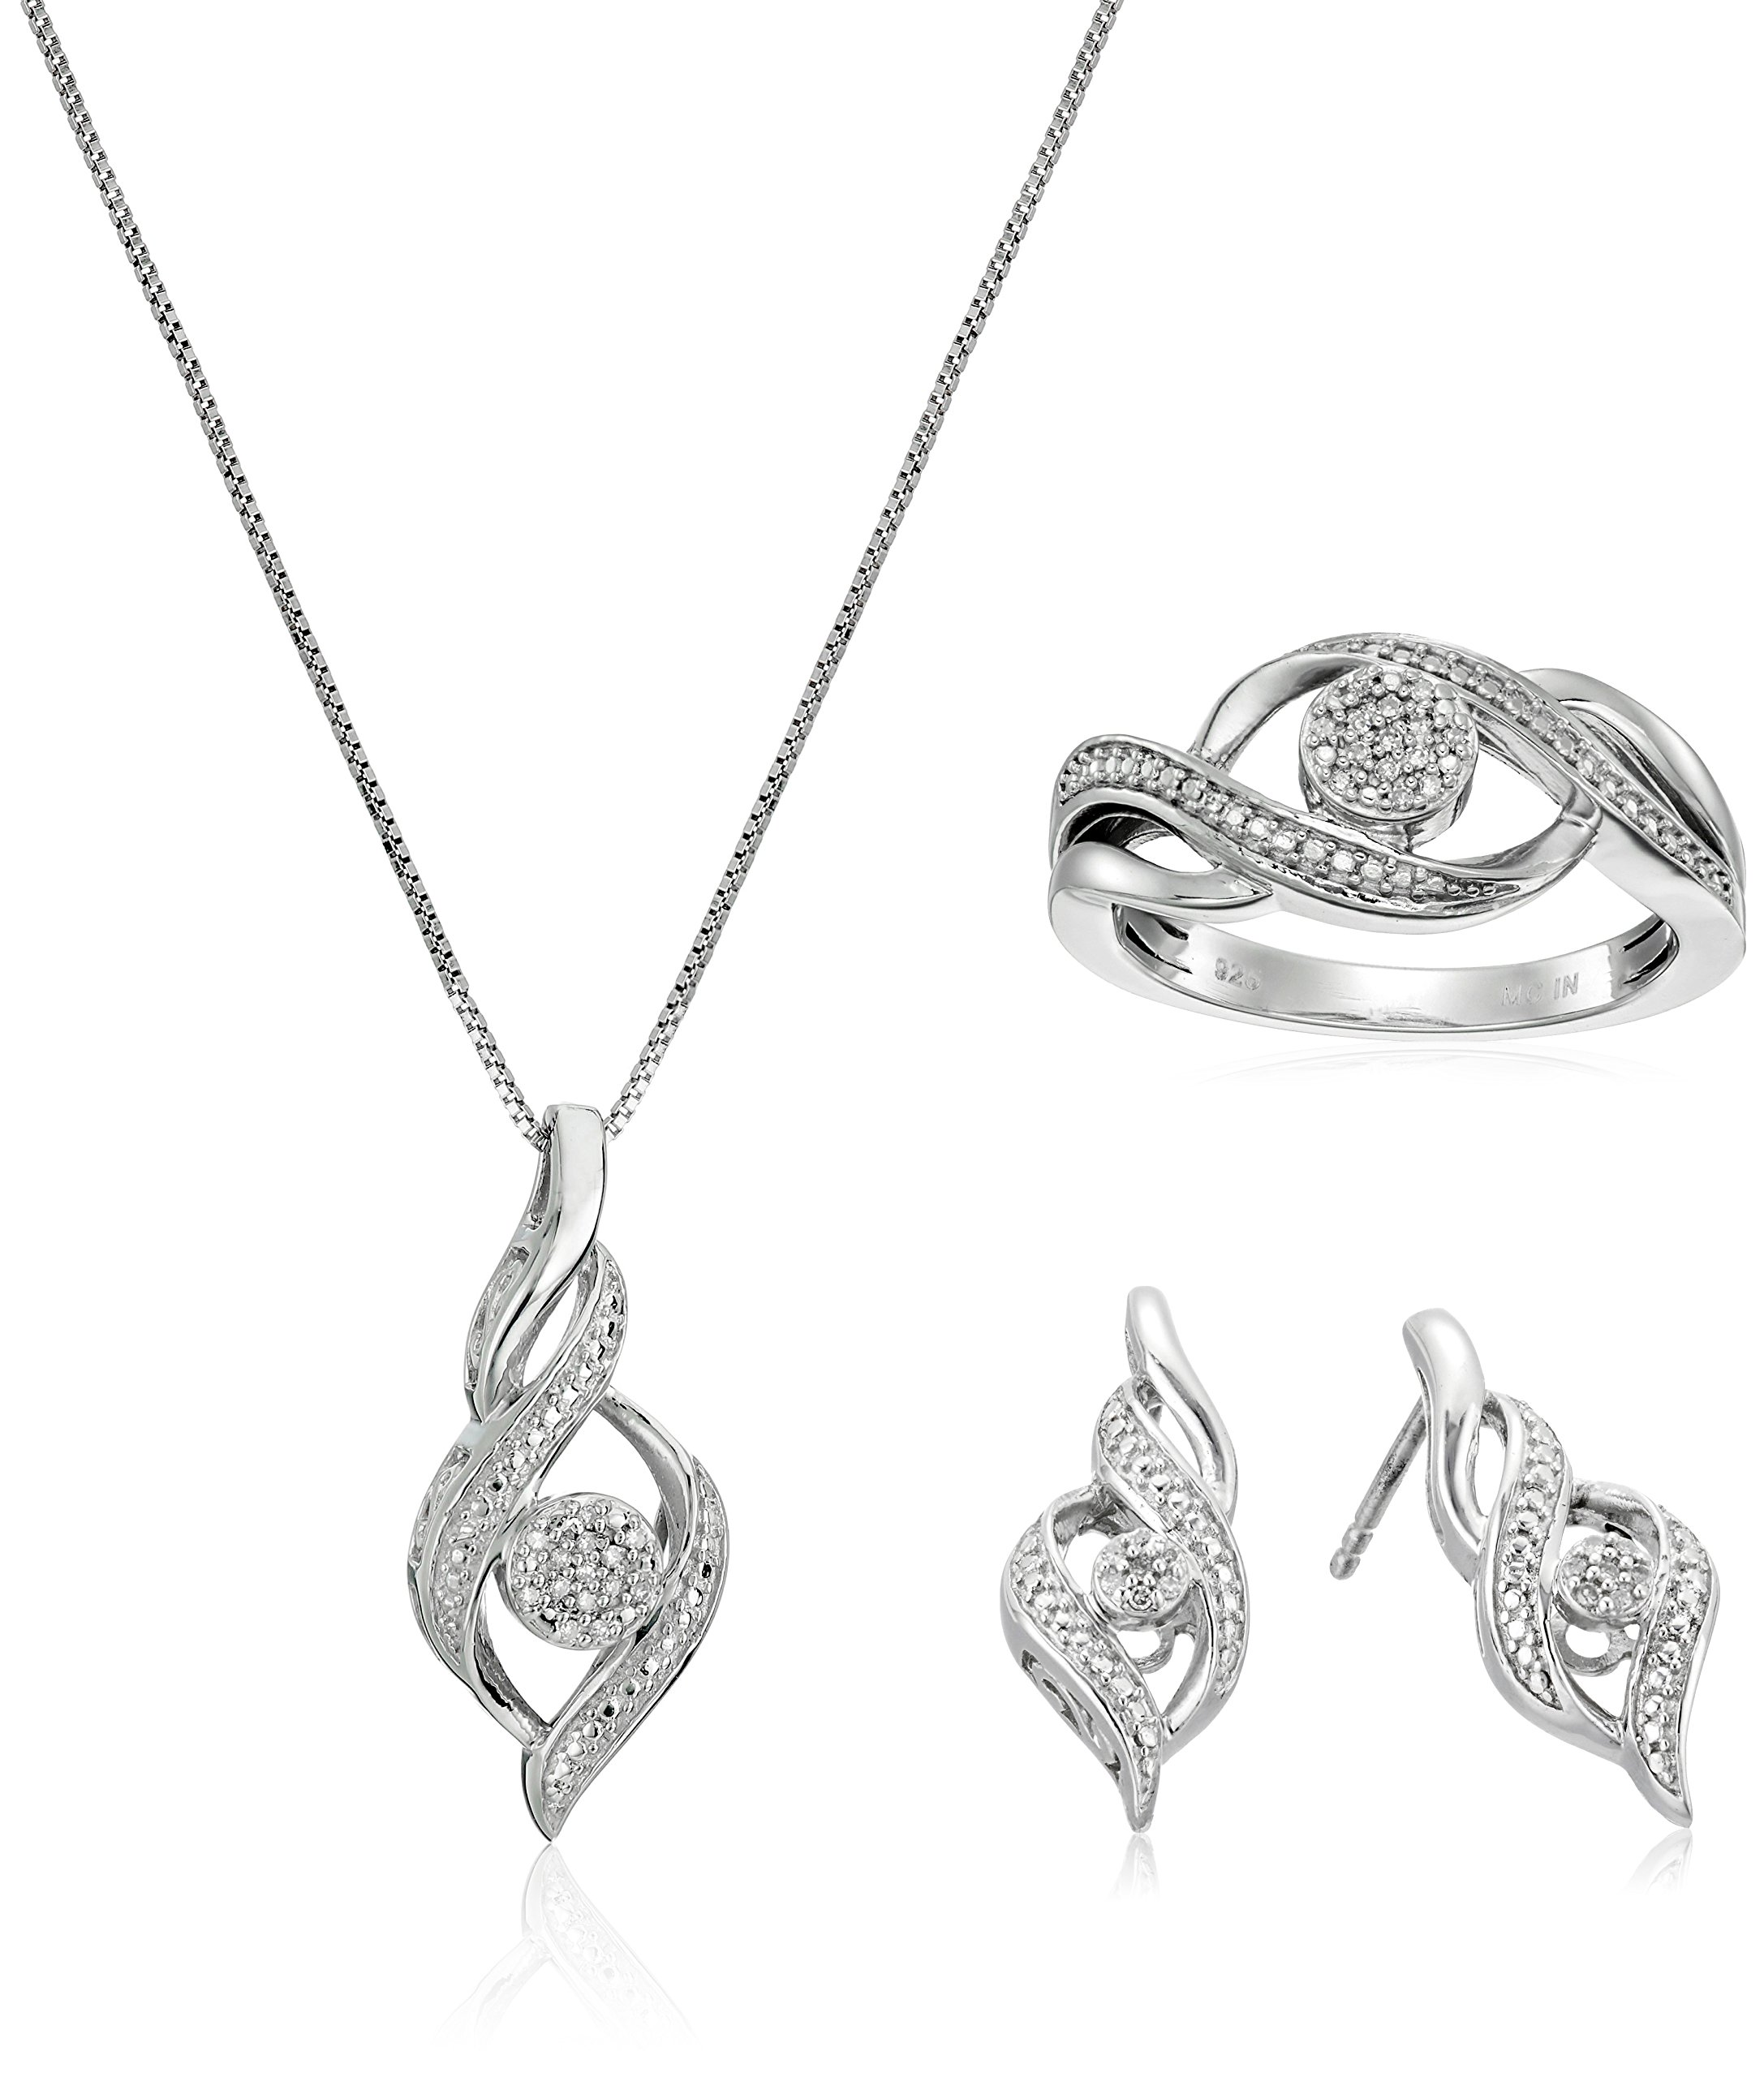 Sterling Silver Diamond Ring Size 7, Earrings, and Pendant Necklace Jewelry Set (1/8 cttw, J-K Color, I2-I3 Clarity) by Amazon Collection (Image #1)